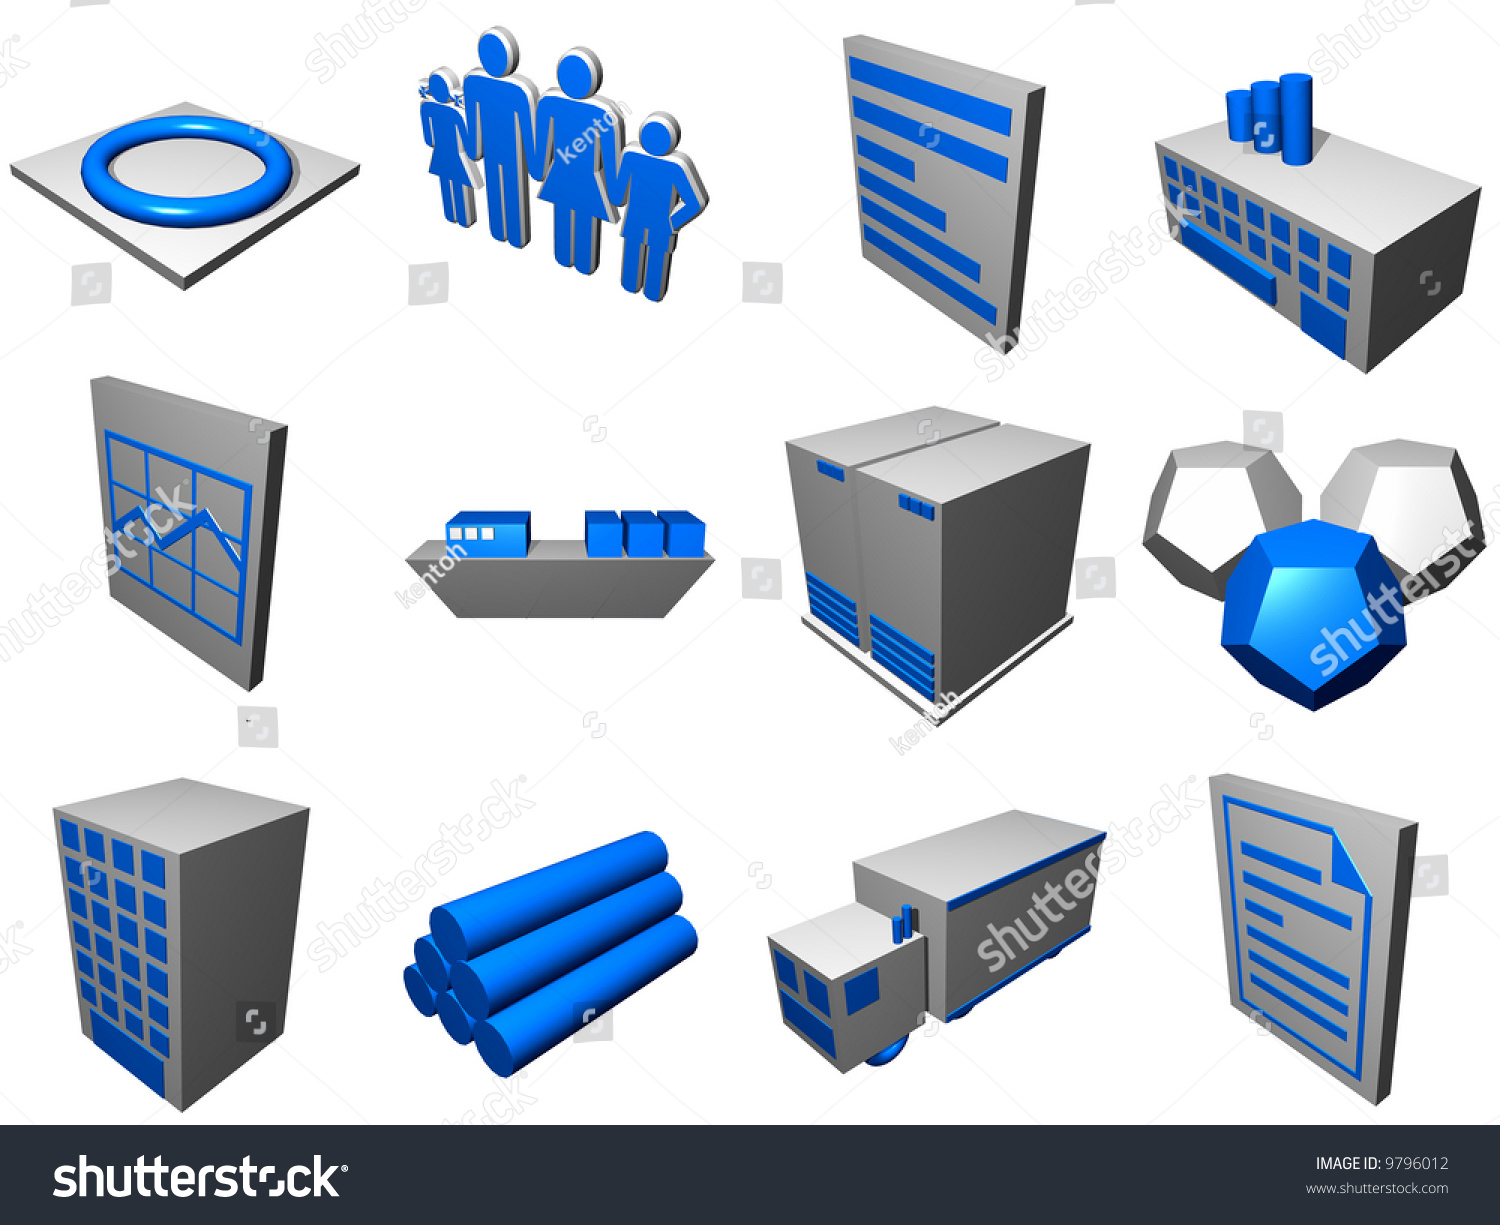 Logistic Supply Chain Diagram Objects Symbols Stock Illustration